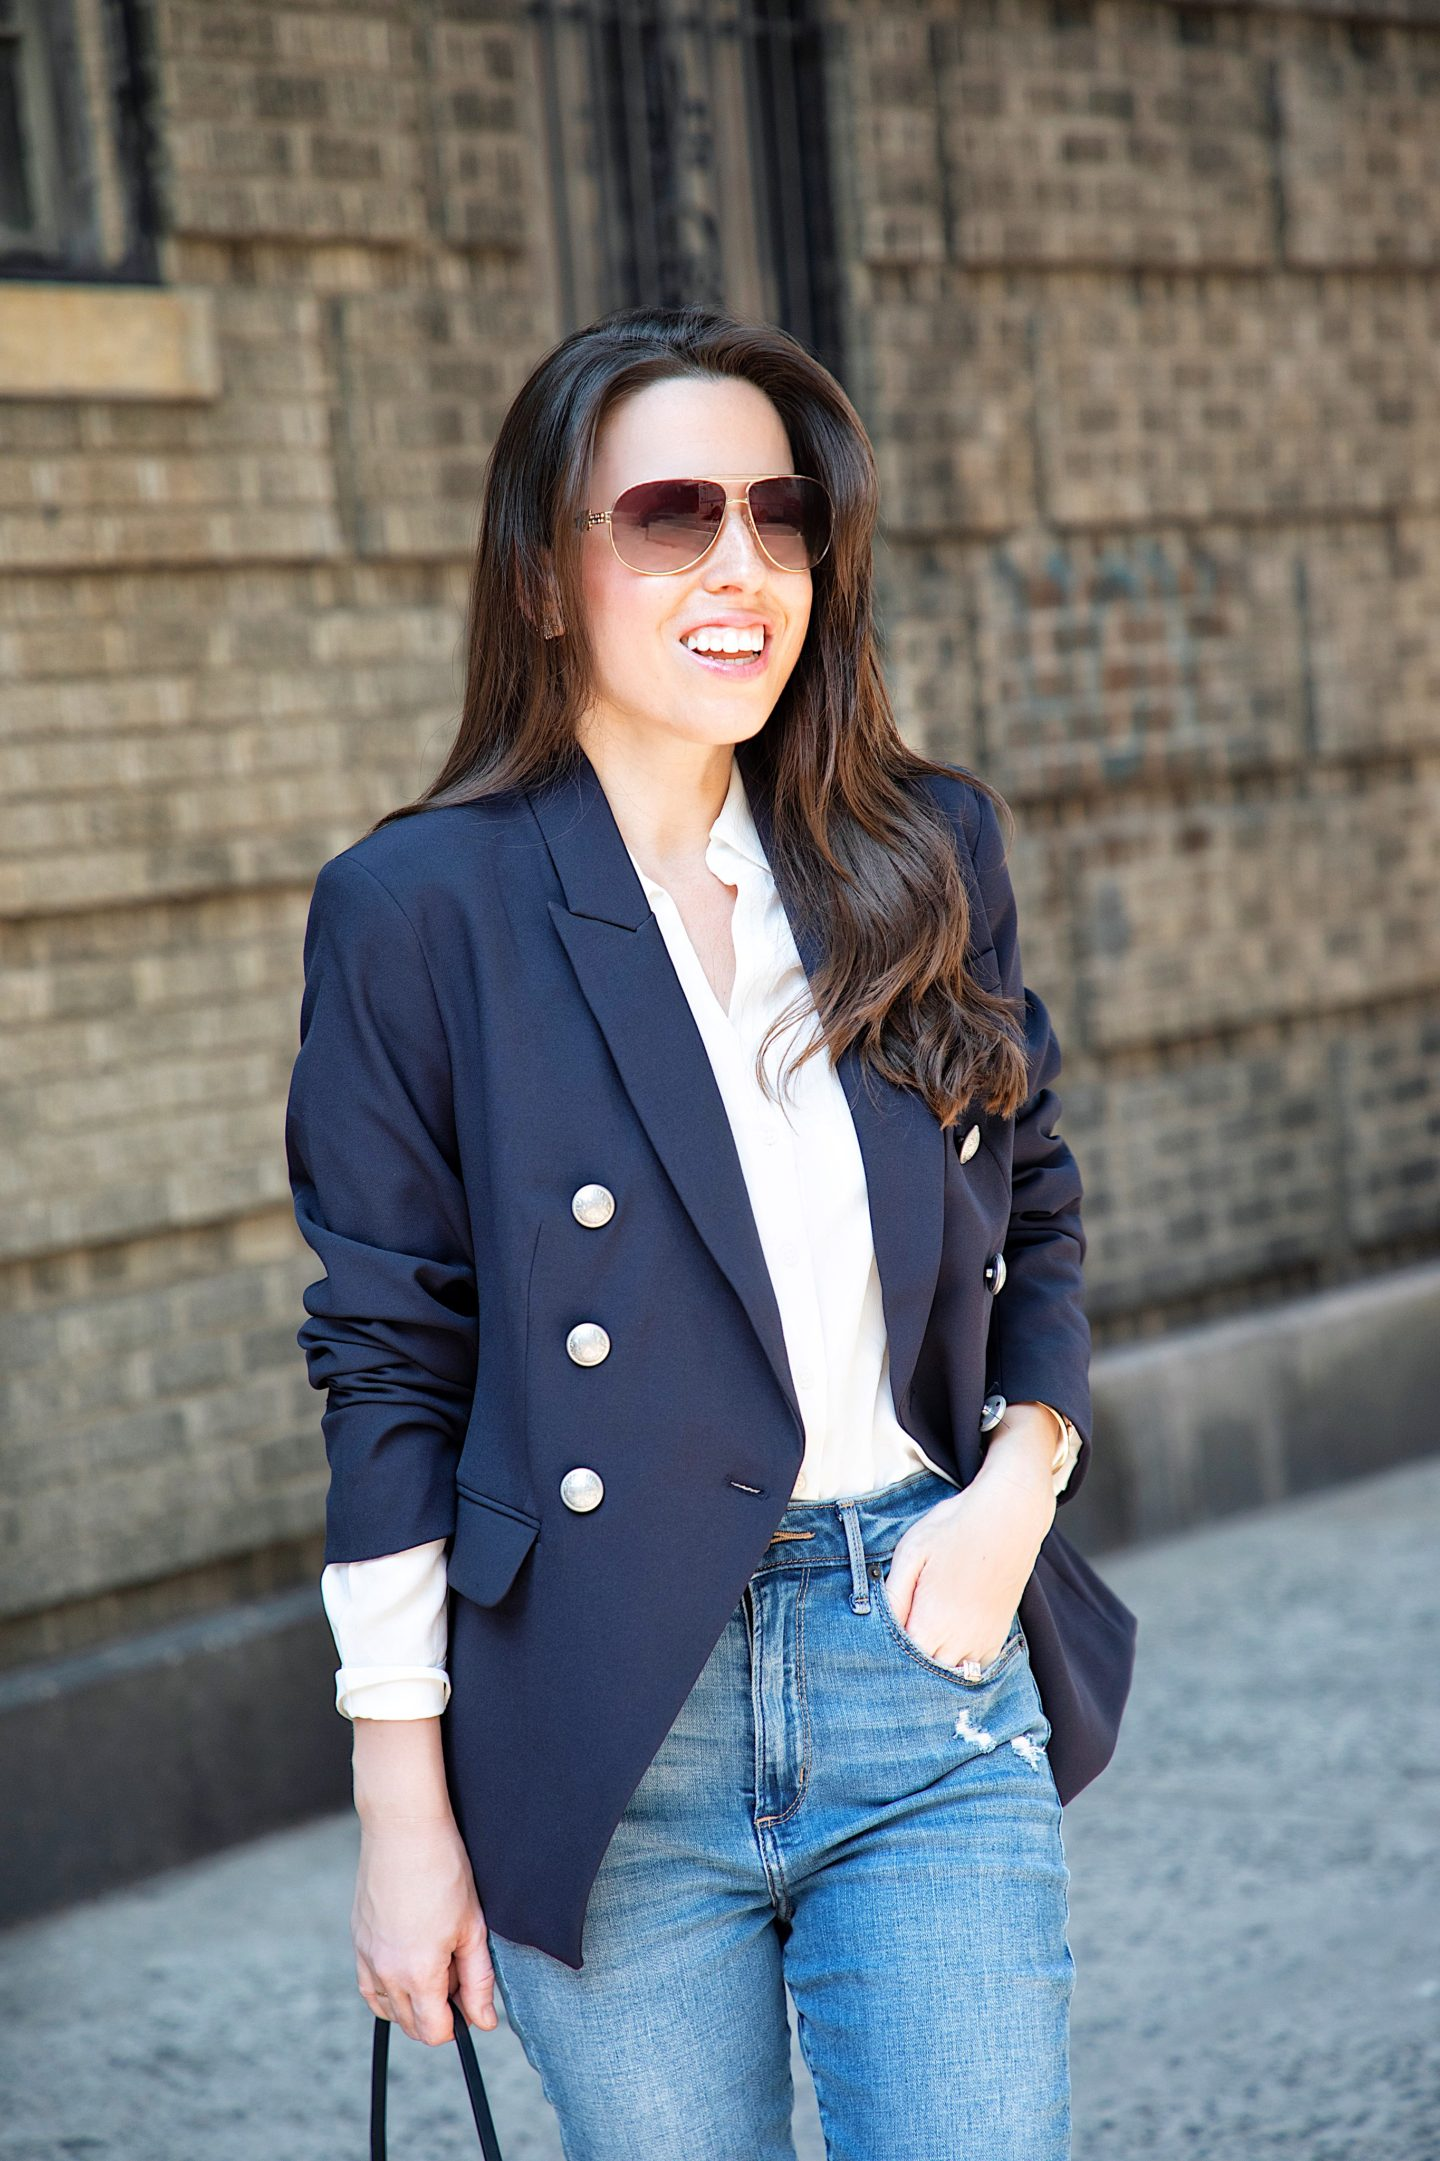 ana florentina wearing navy blazer with buttons